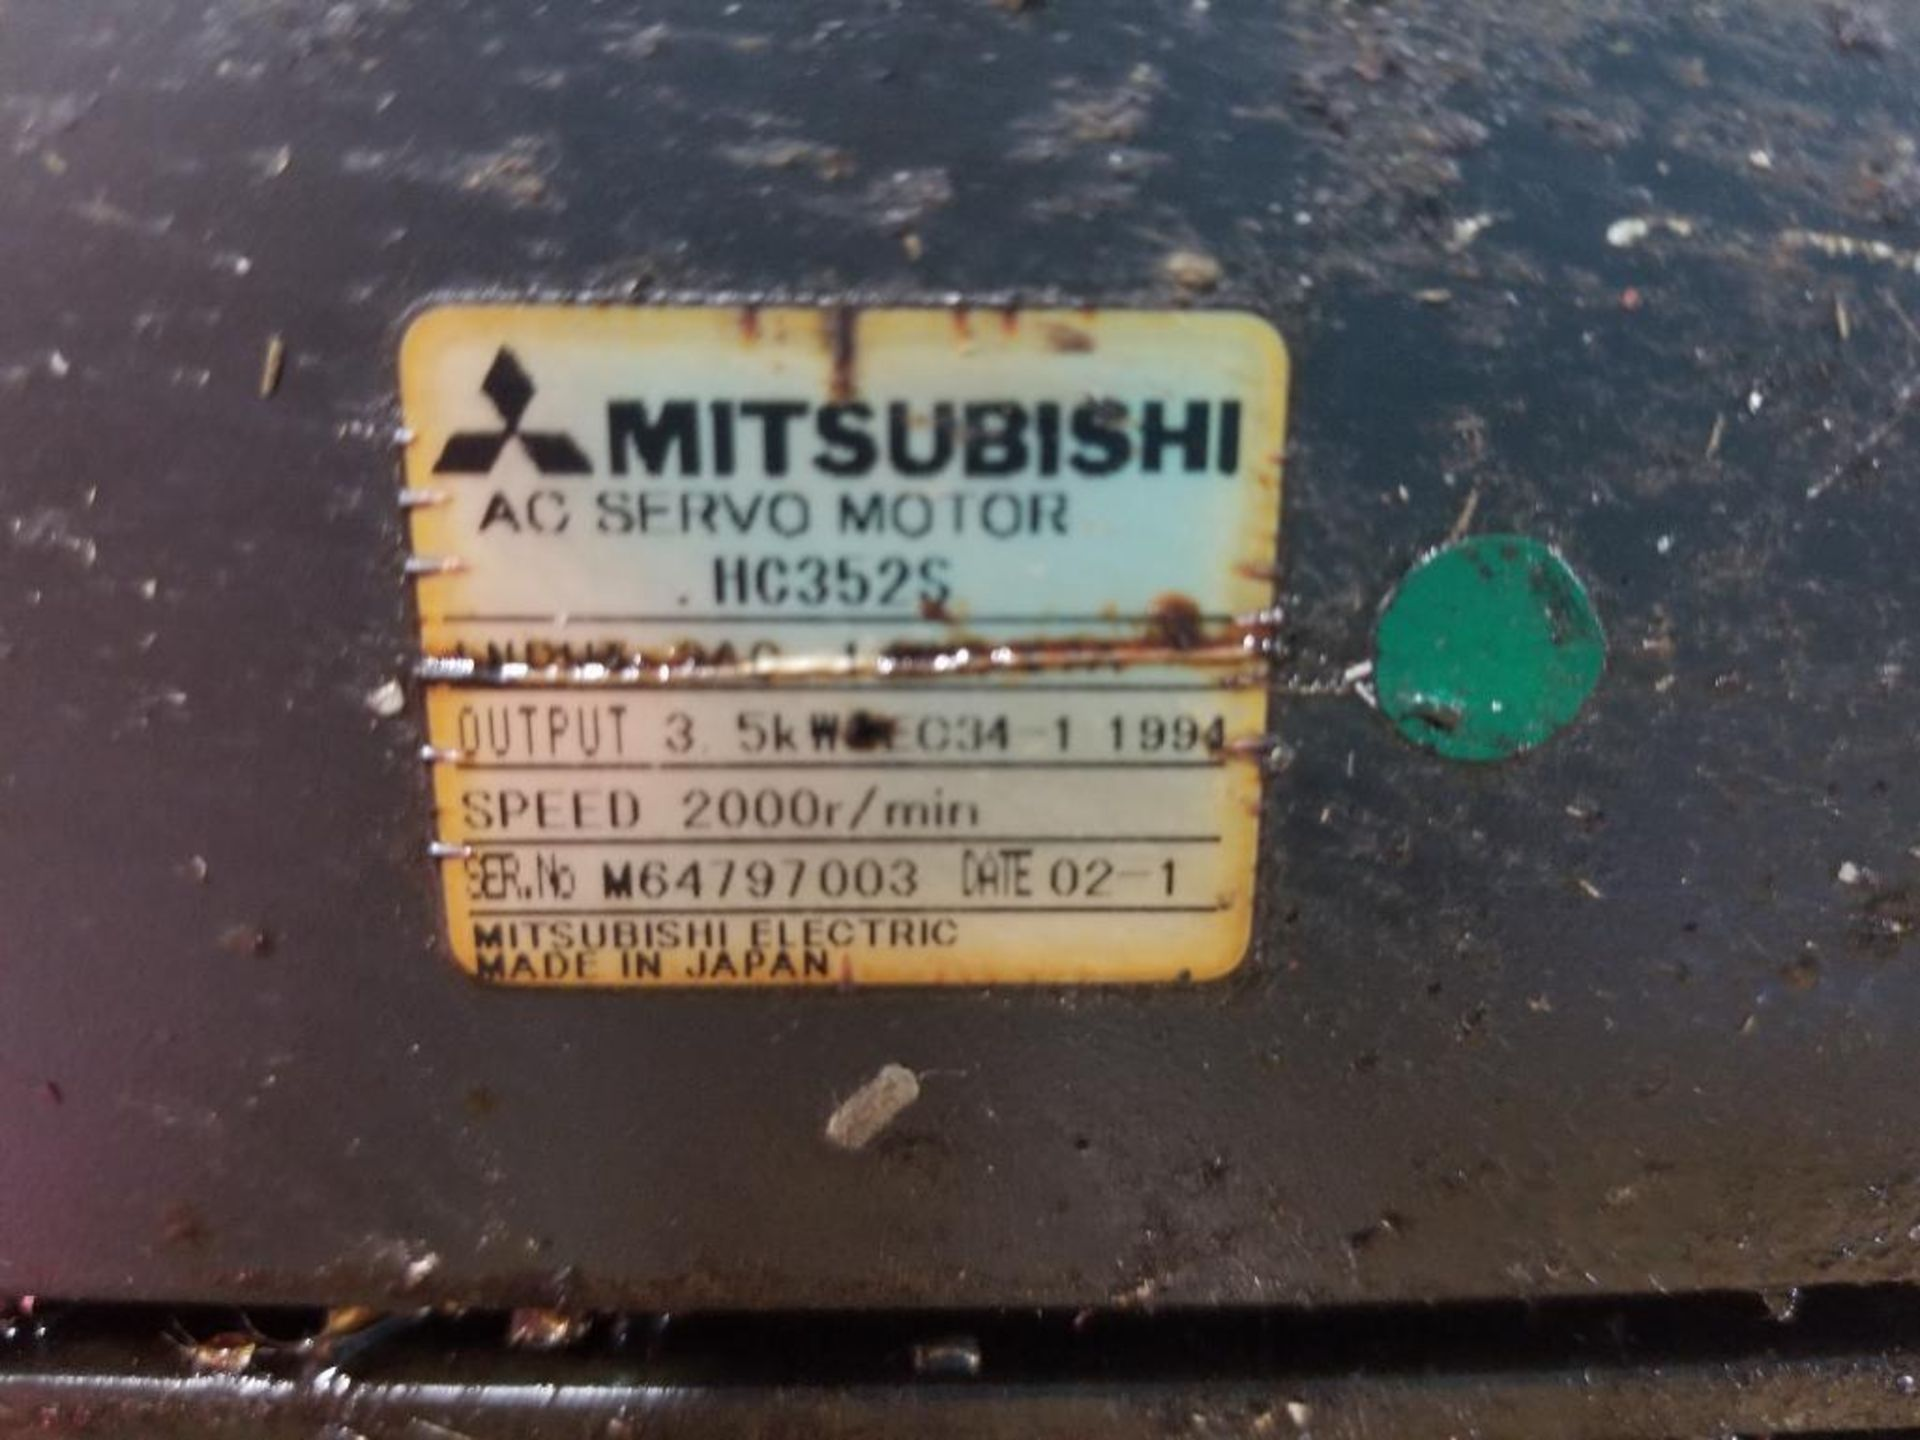 Mitsubishi HC-3525S servo motor. In box, but appears used. - Image 3 of 4